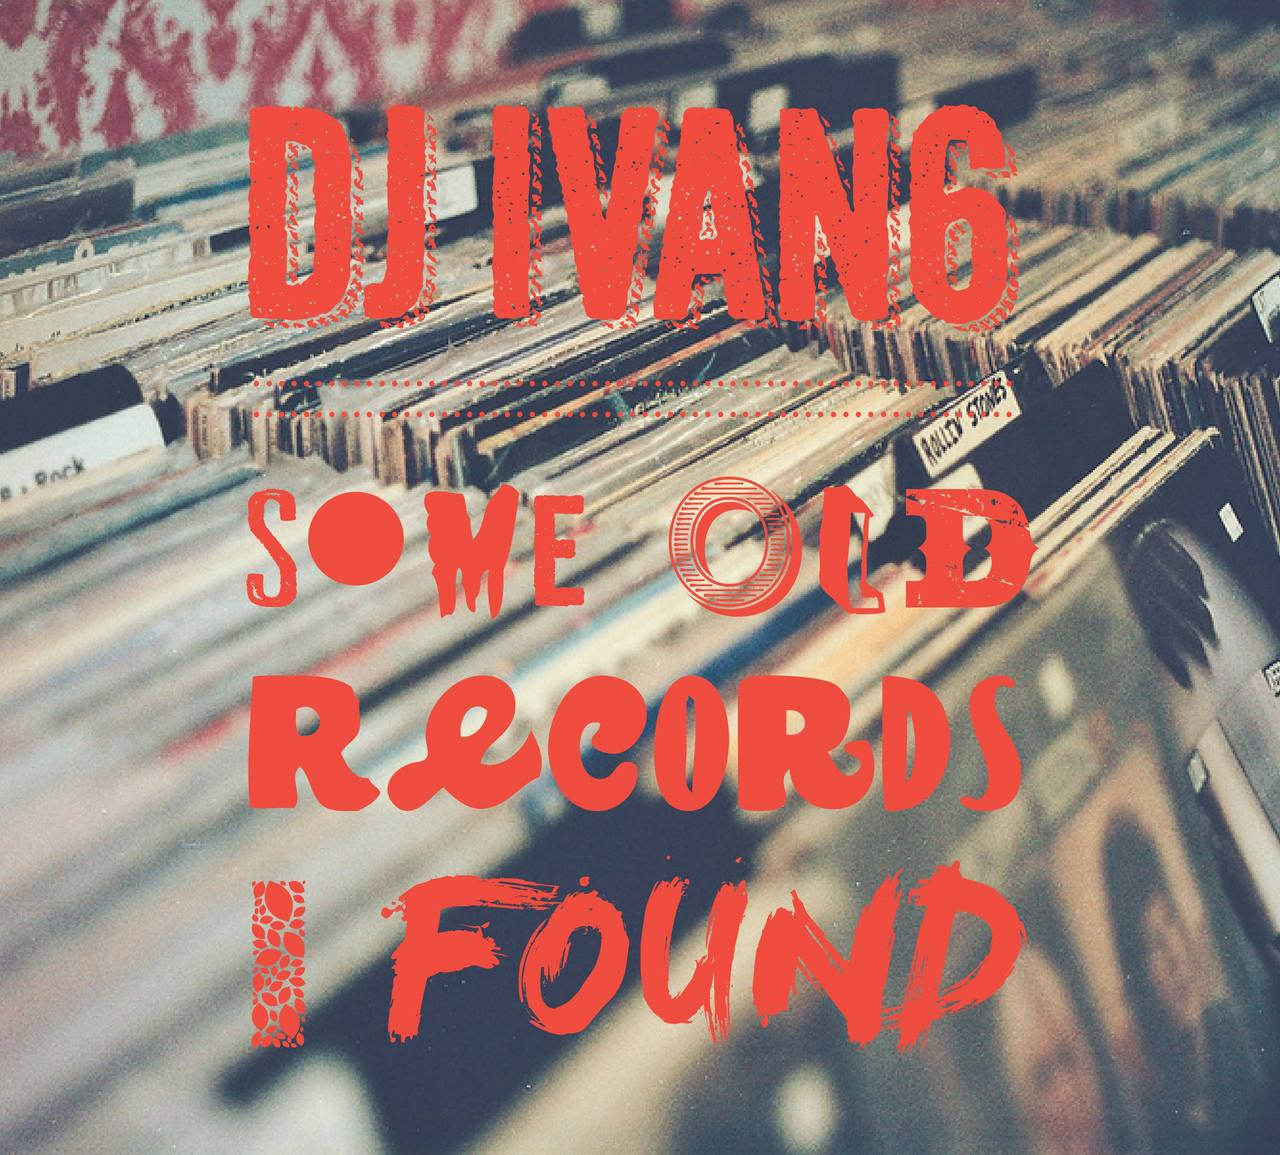 """Some Old Records I Found…""    Holdin' Court's resident DJ Ivan6 yesterday released a compilation of old records he has recently picked.  Most of theses are recognisable as being sampled by both US & UK Hip-Hop producers.    Click HERE   to check it out, for a gentle start to your week.   In his own words:     Various old records I've found from various crates in various places around various parts of the UK.      Feat. on this mix:      Al Green / The Detroit Spinners / Charles Bradley / Gwen McCrae / Apollo / Teena Marie / 10cc / Nina Simone / Isaac Hayes / The Parliaments / Darondo / Sun Ra / June Christy + more.      All vinyl, no Serato.     Enjoy."